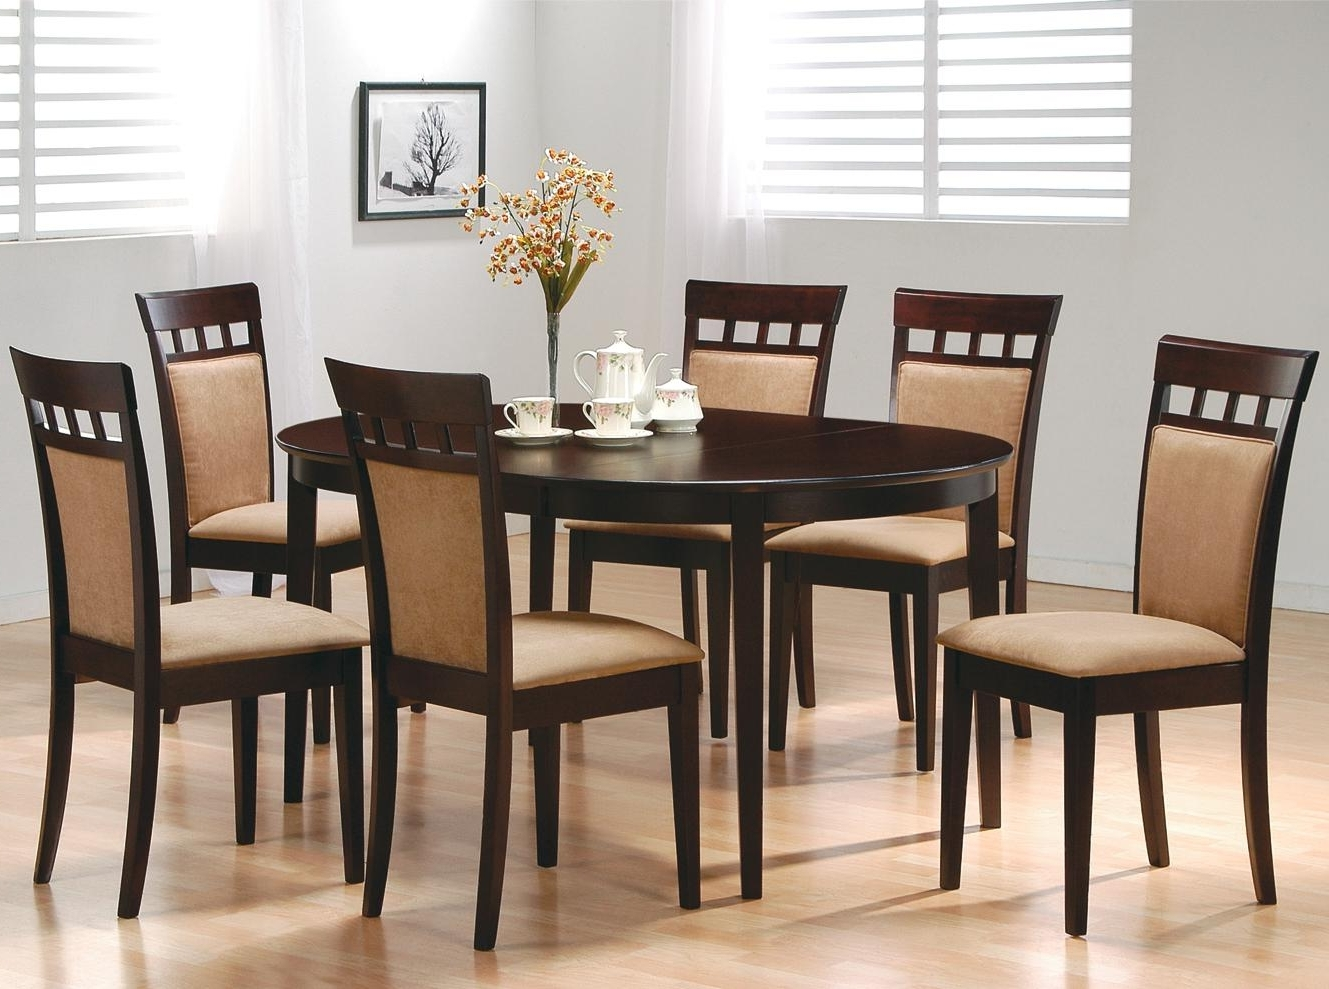 Dunk & Bright Furniture Inside Dark Wood Dining Tables 6 Chairs (View 4 of 25)